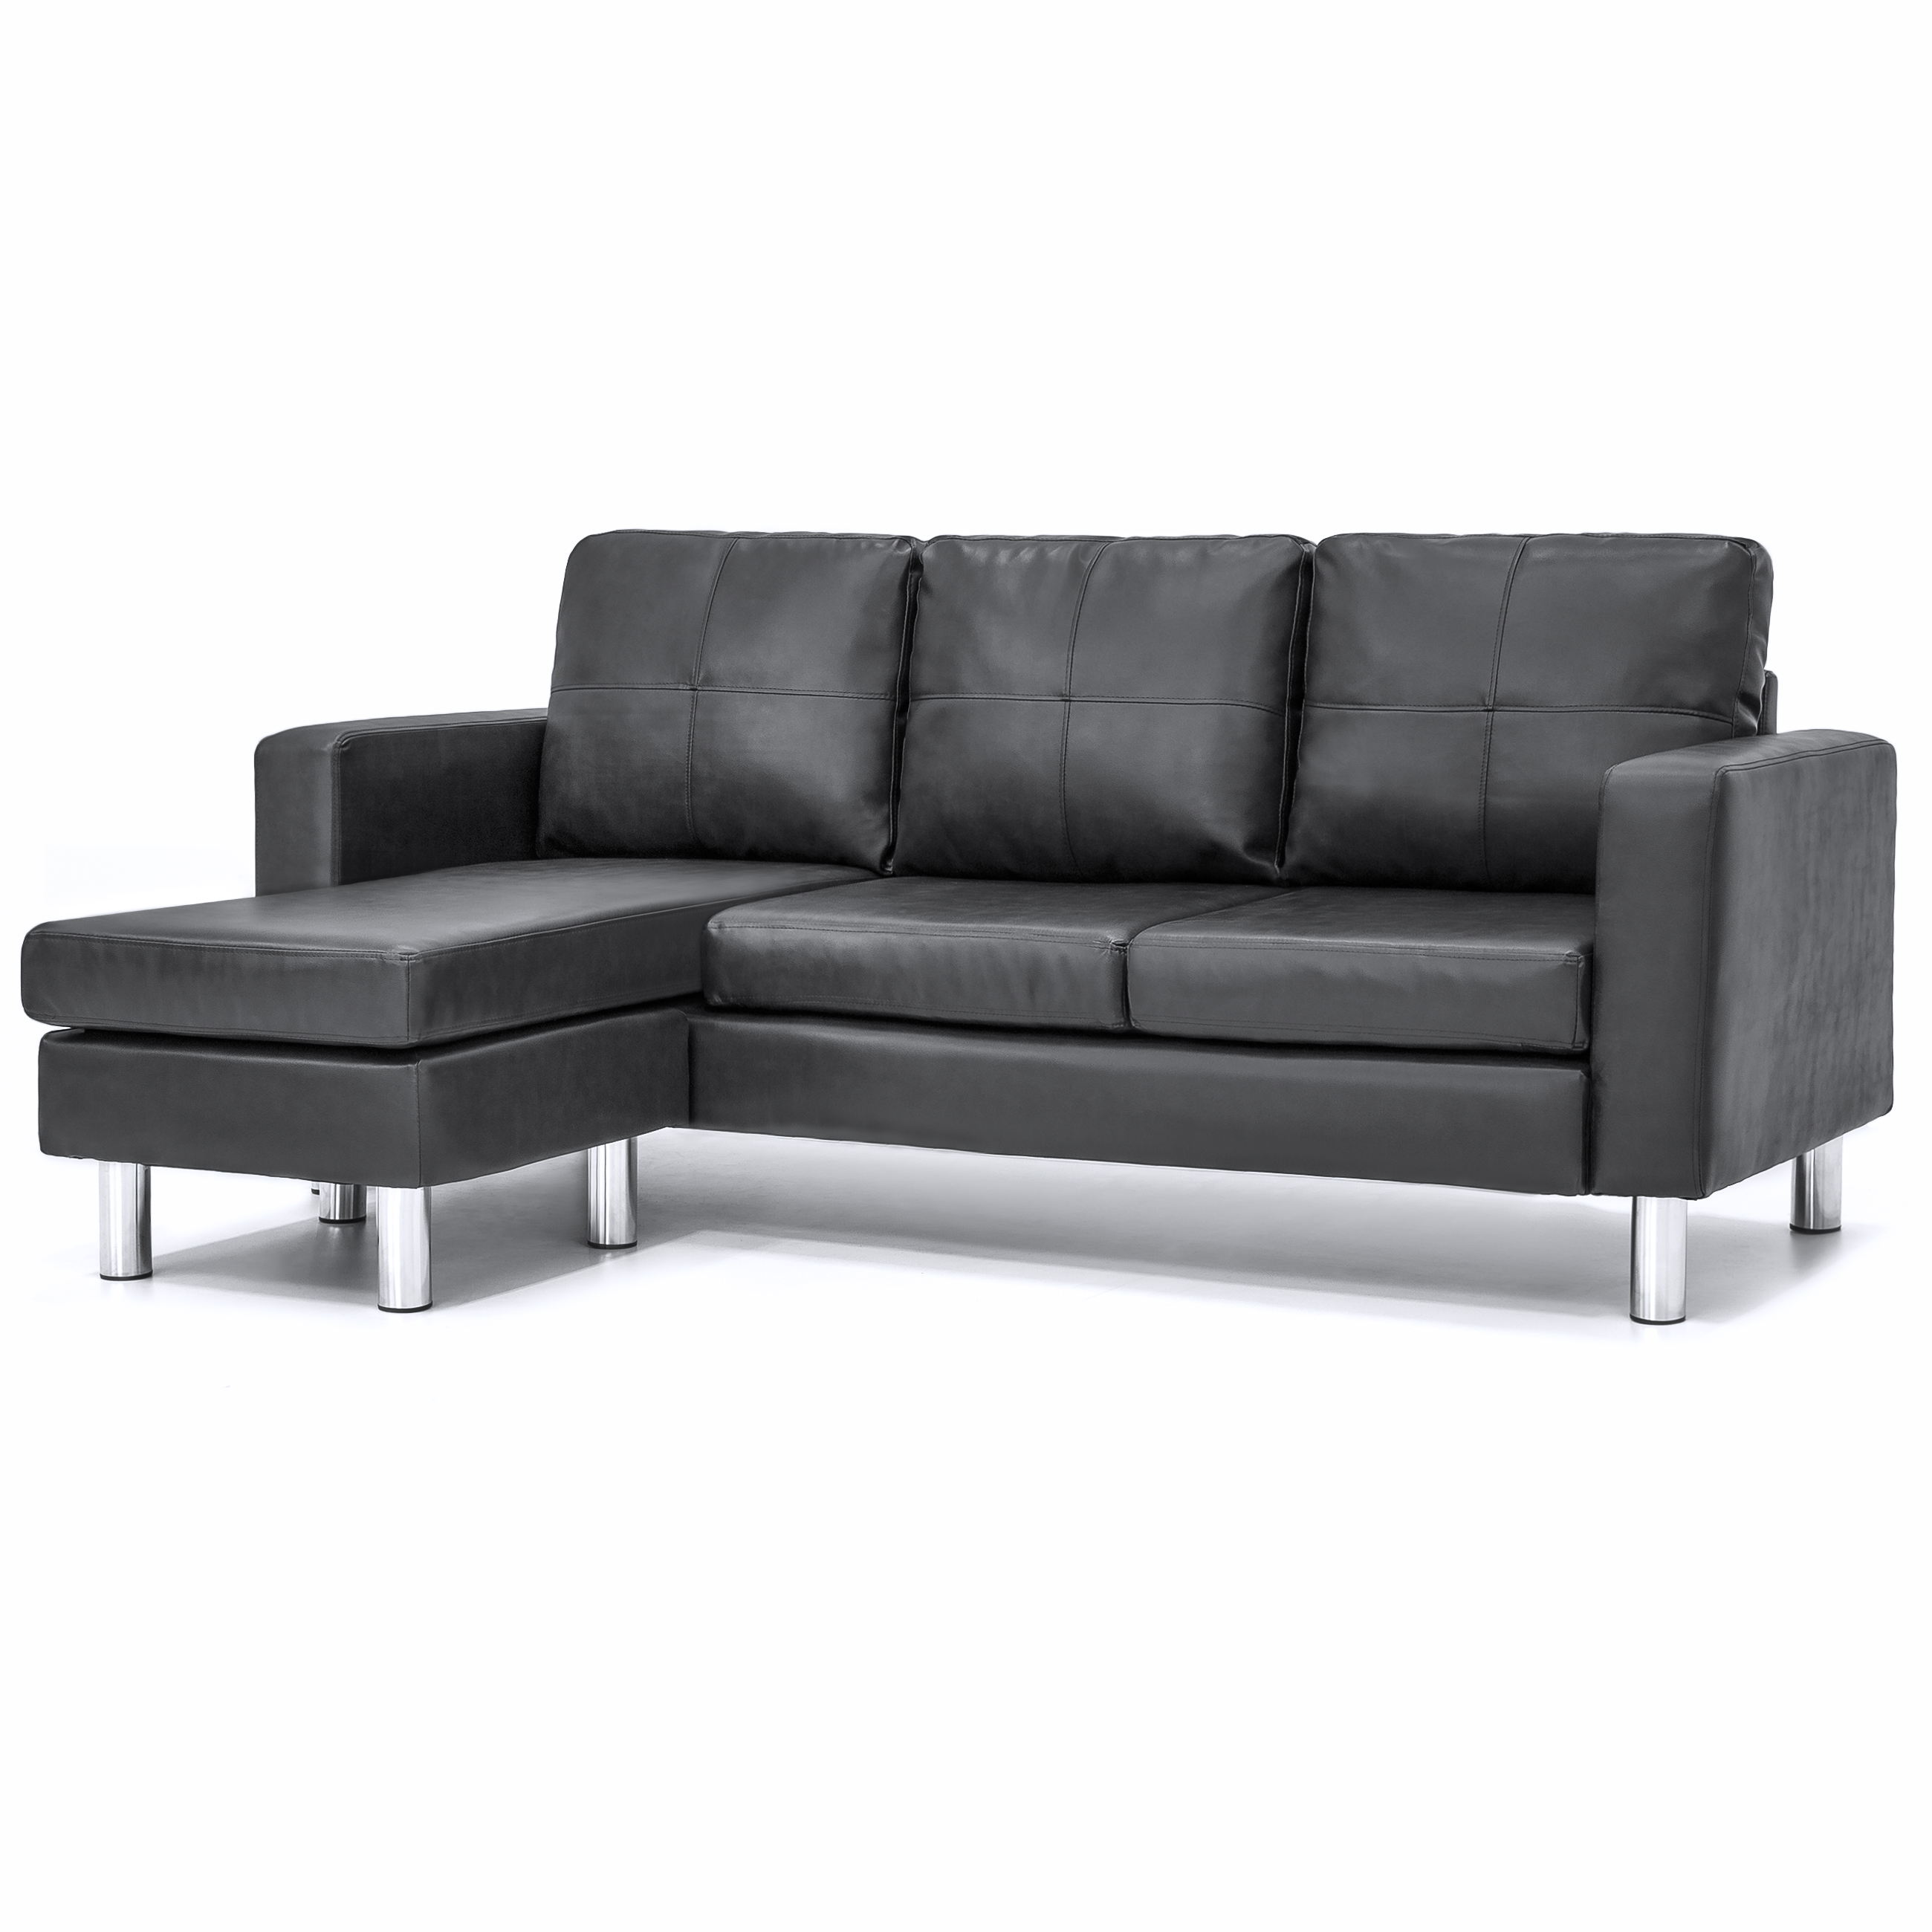 how to make sure leather sofa does not get creases